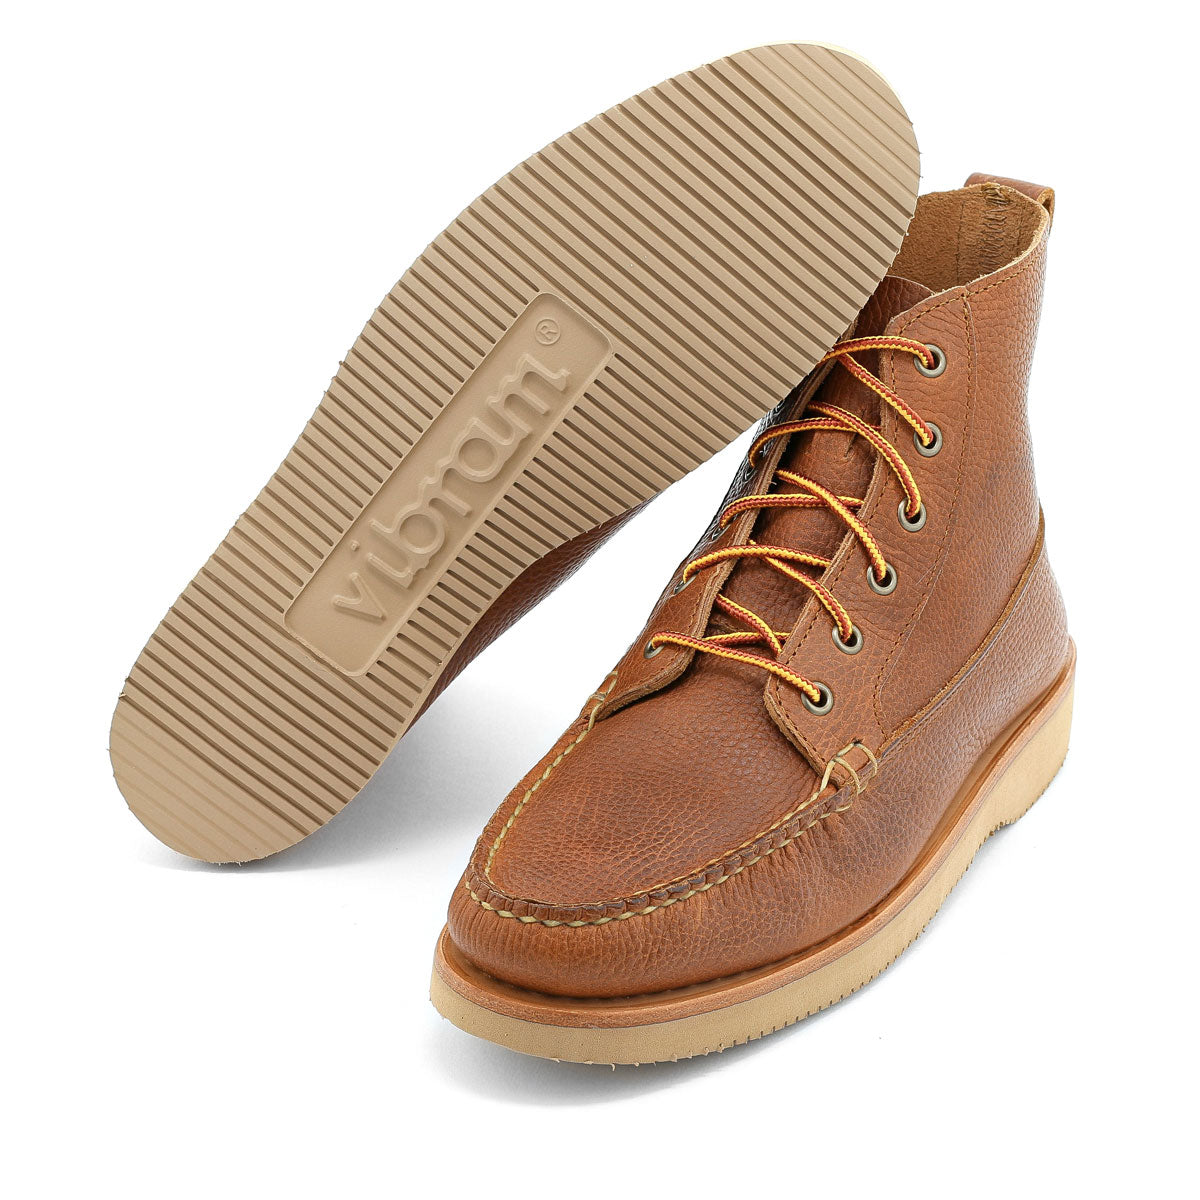 Dirigo Handsewn Boot - Tan Pebble Grain